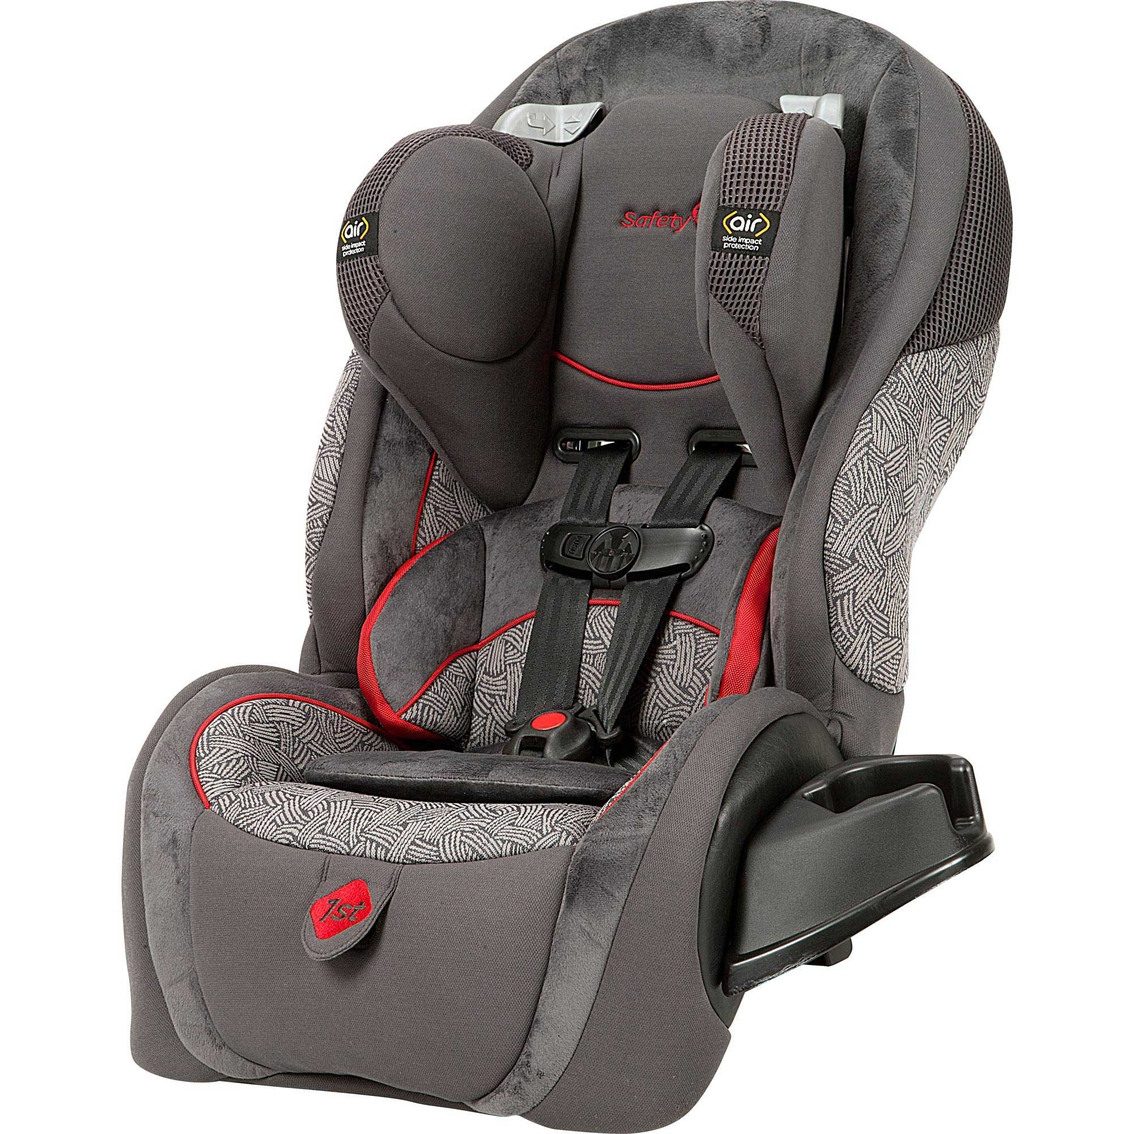 safety 1st complete air 65 convertible car seat black red baby clearance shop the exchange. Black Bedroom Furniture Sets. Home Design Ideas